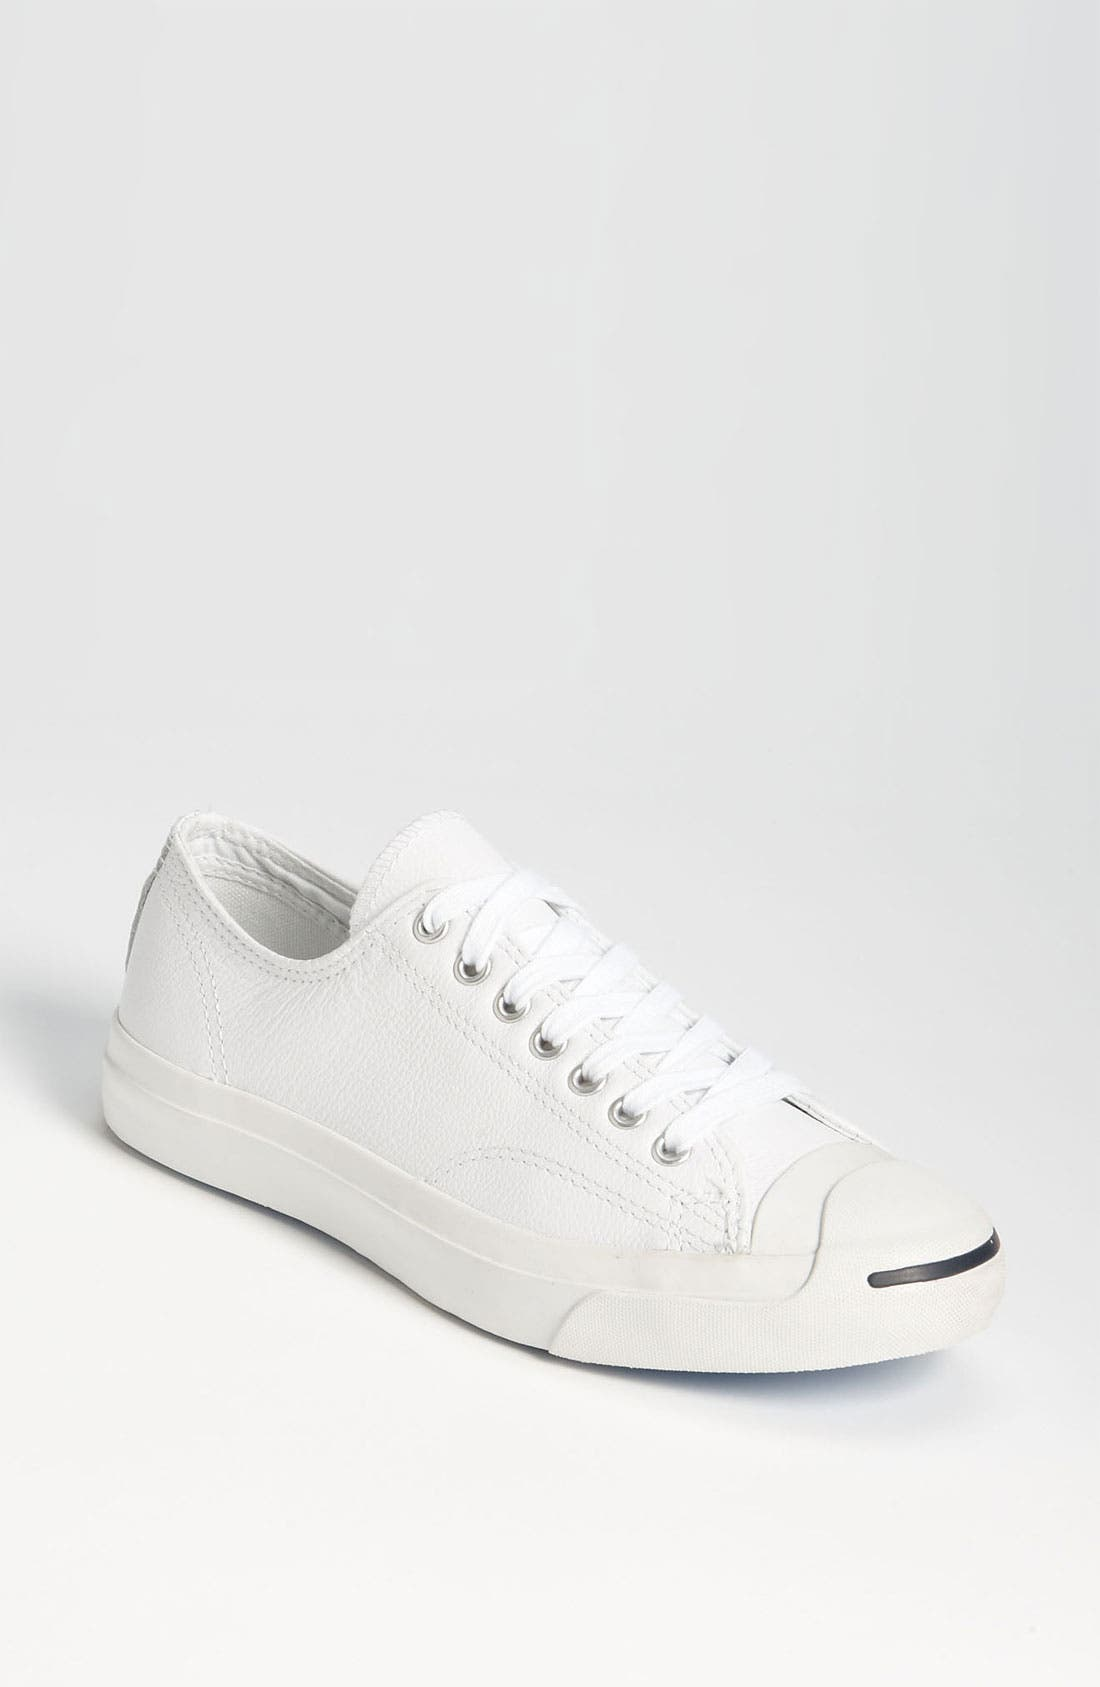 'Jack Purcell' Leather Sneaker,                             Main thumbnail 1, color,                             WLE